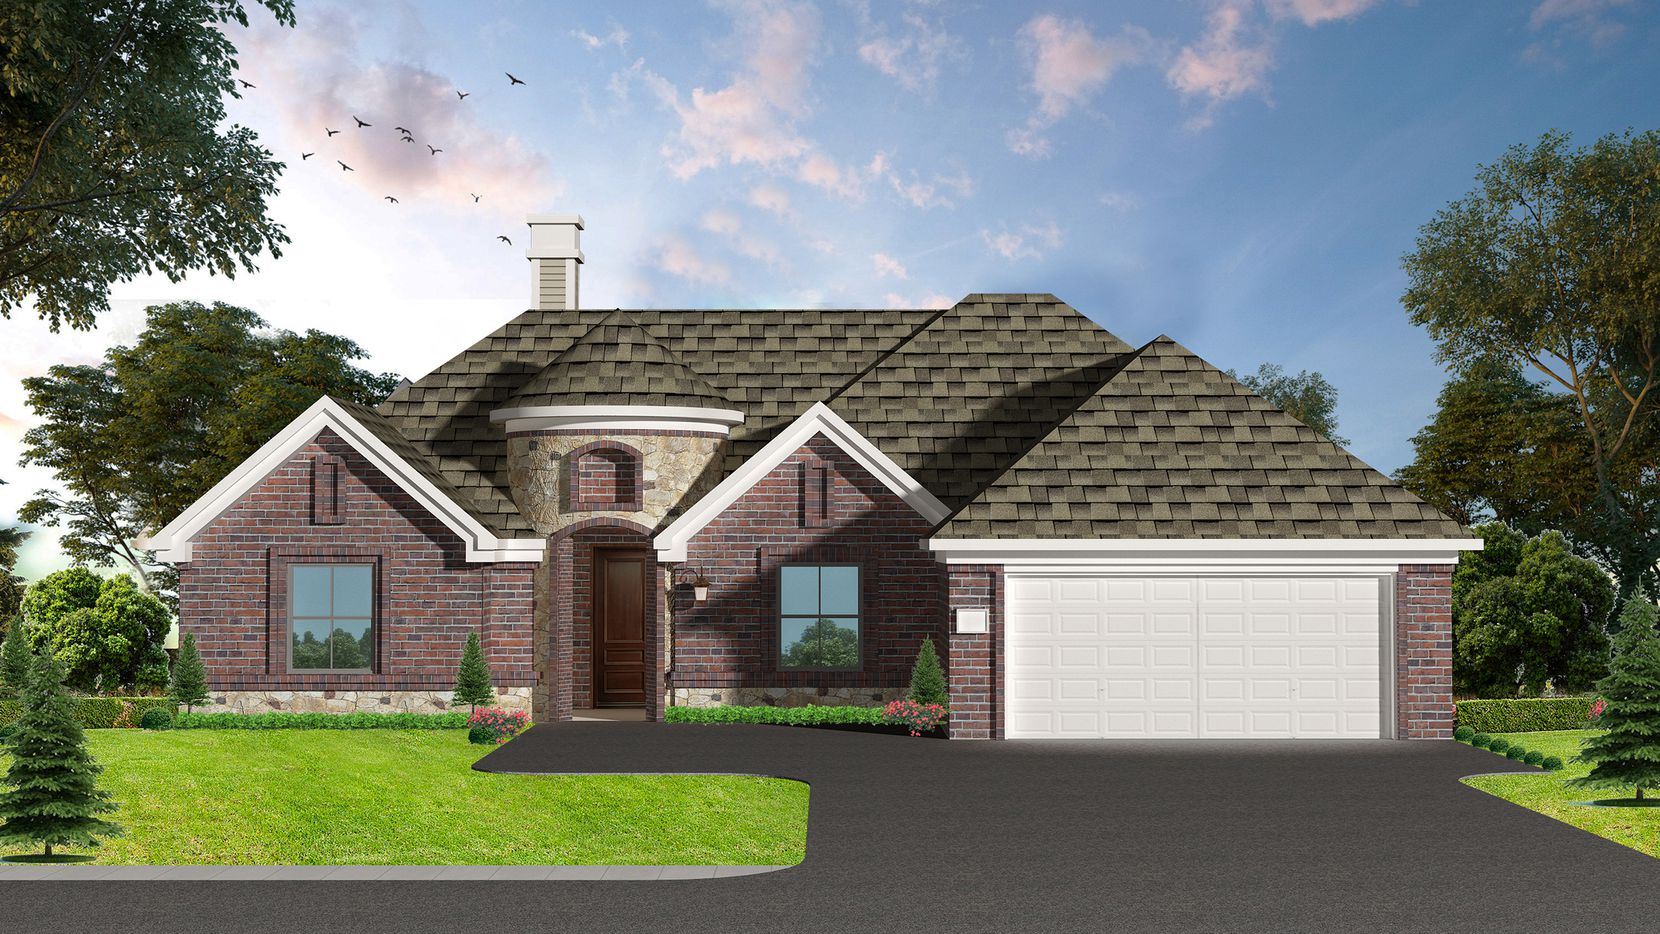 Prices range from the $250s to the $320s for residences by VeraLux Homes in Rosewood Estates in Azle.